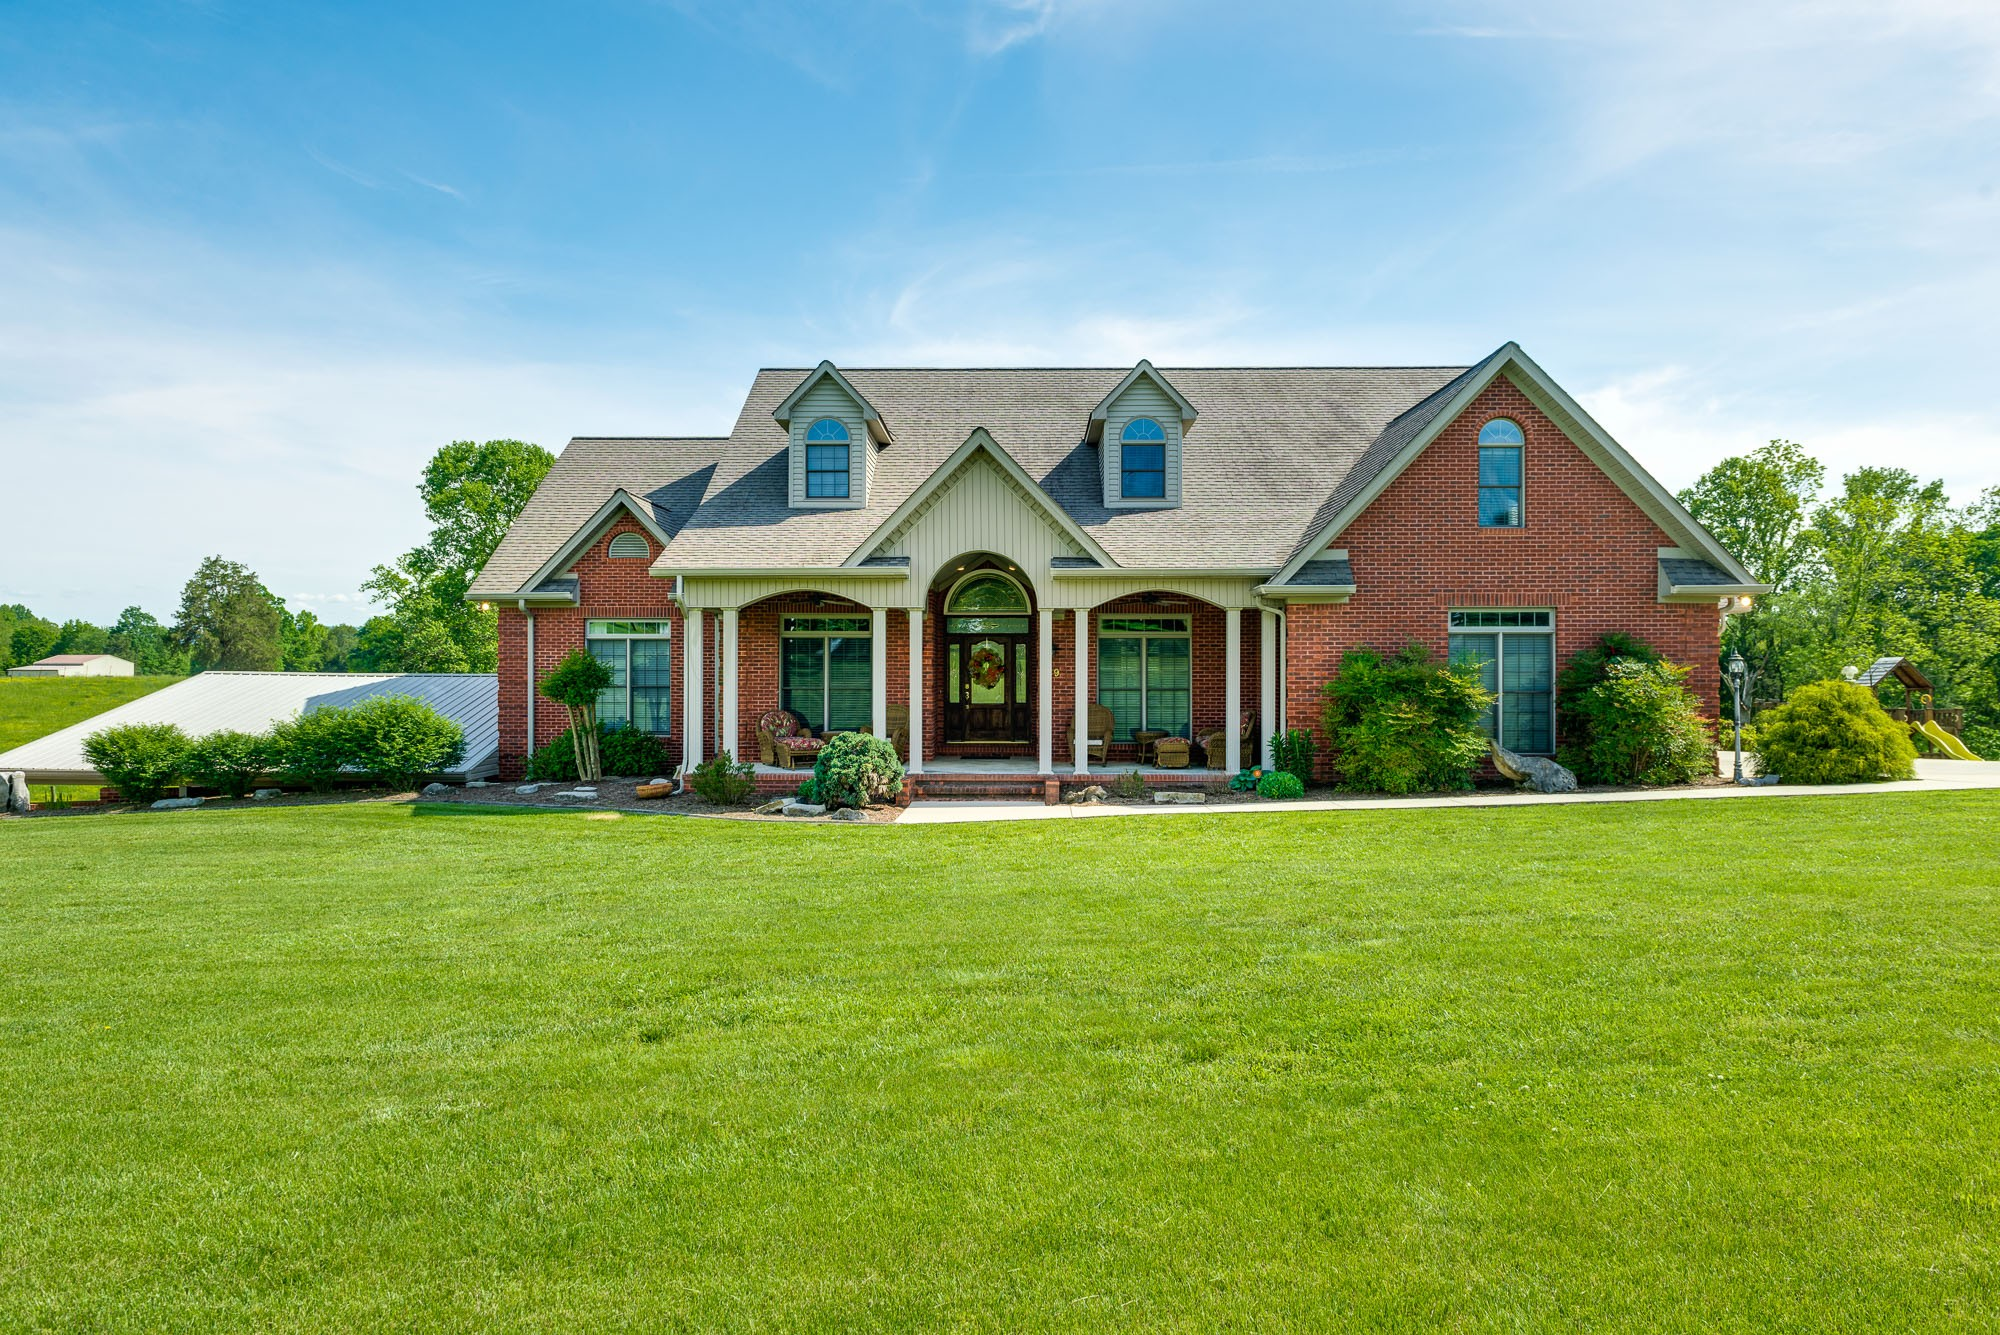 389 W Wilmouth Rd, Cookeville, TN 38506 - Cookeville, TN real estate listing